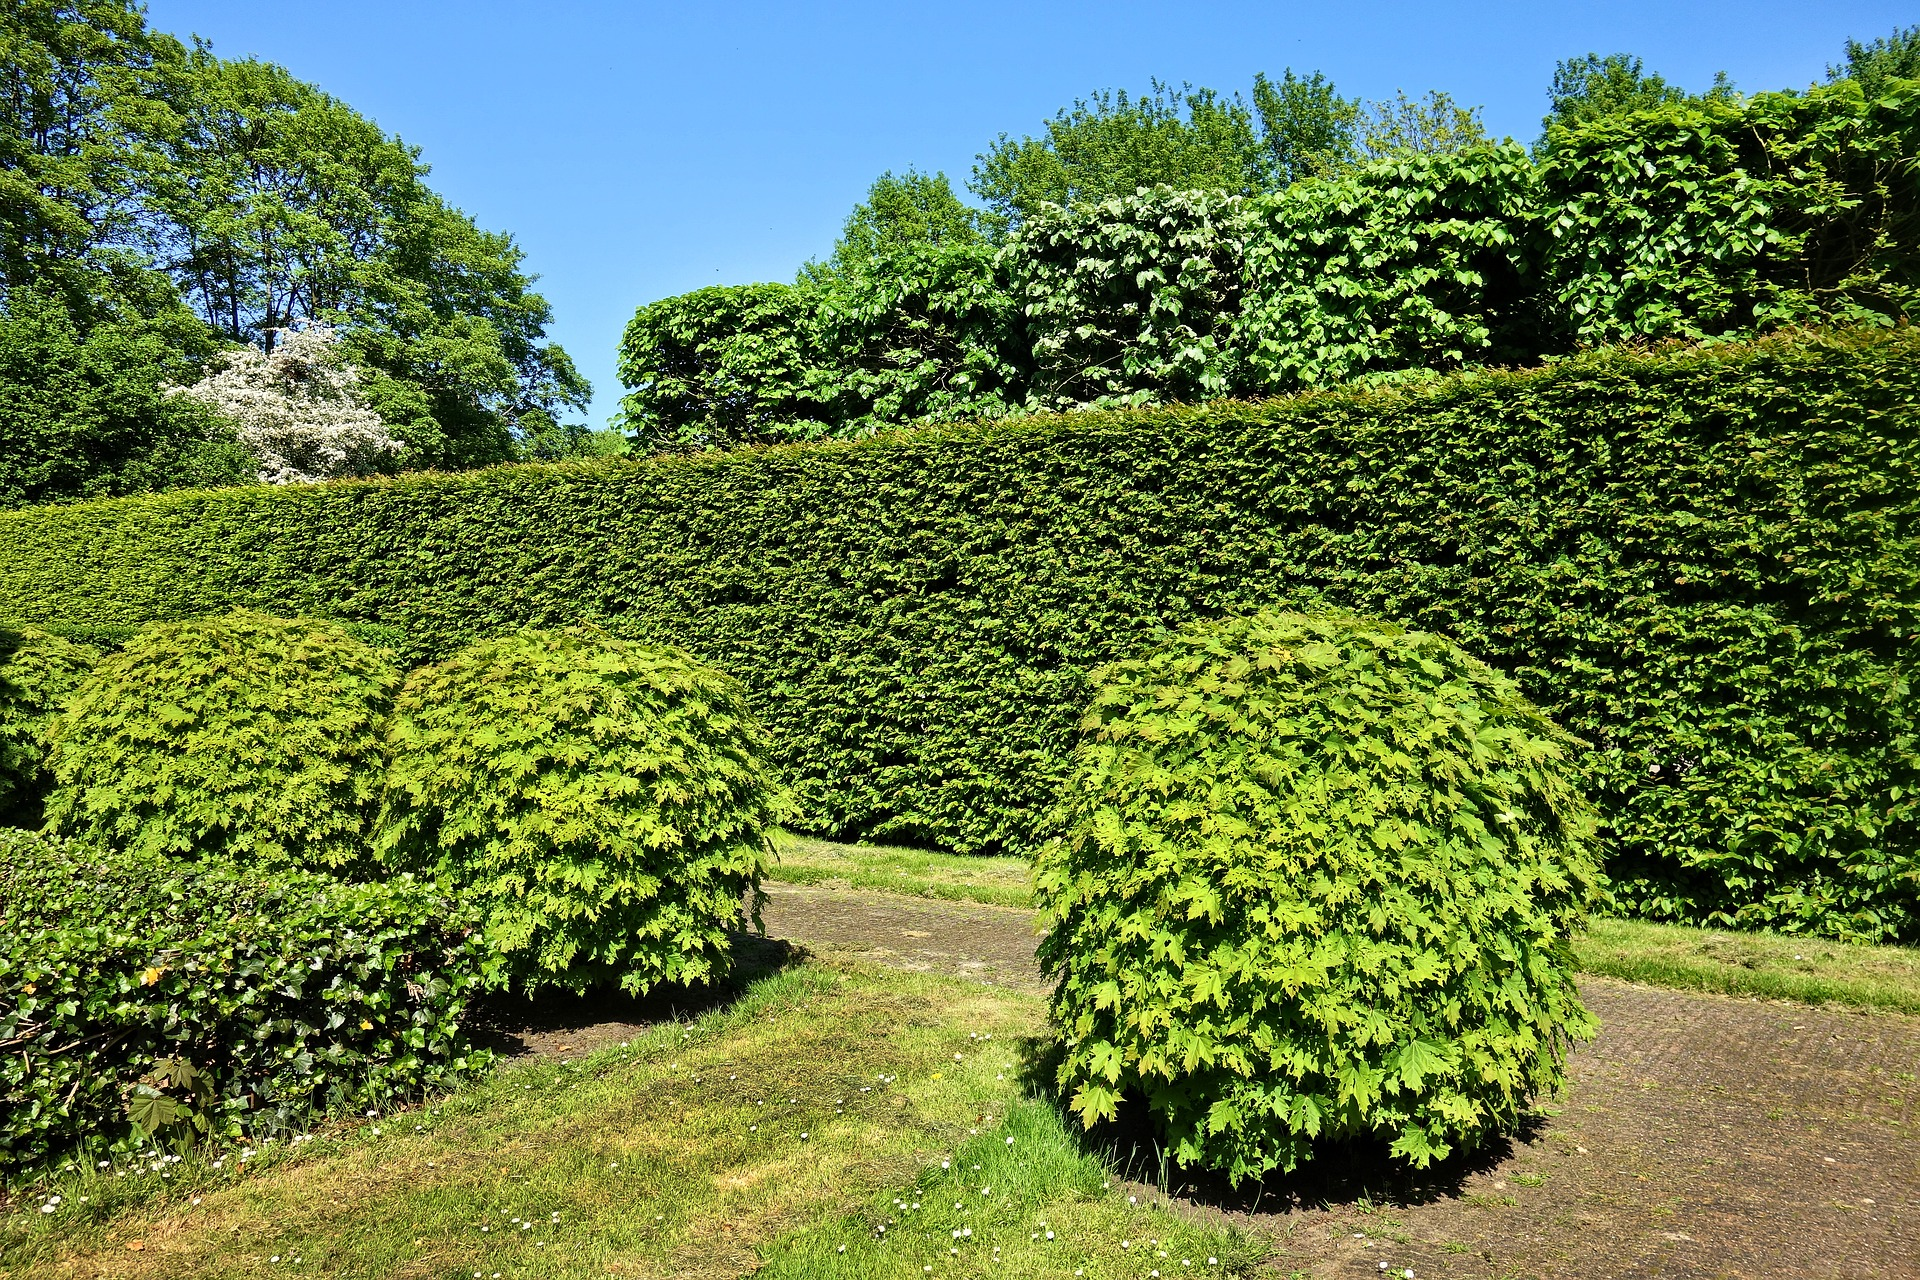 hedge, Natural Privacy Protection With Hedges And Climbing Plants, Best Garden, Home And DIY Tips